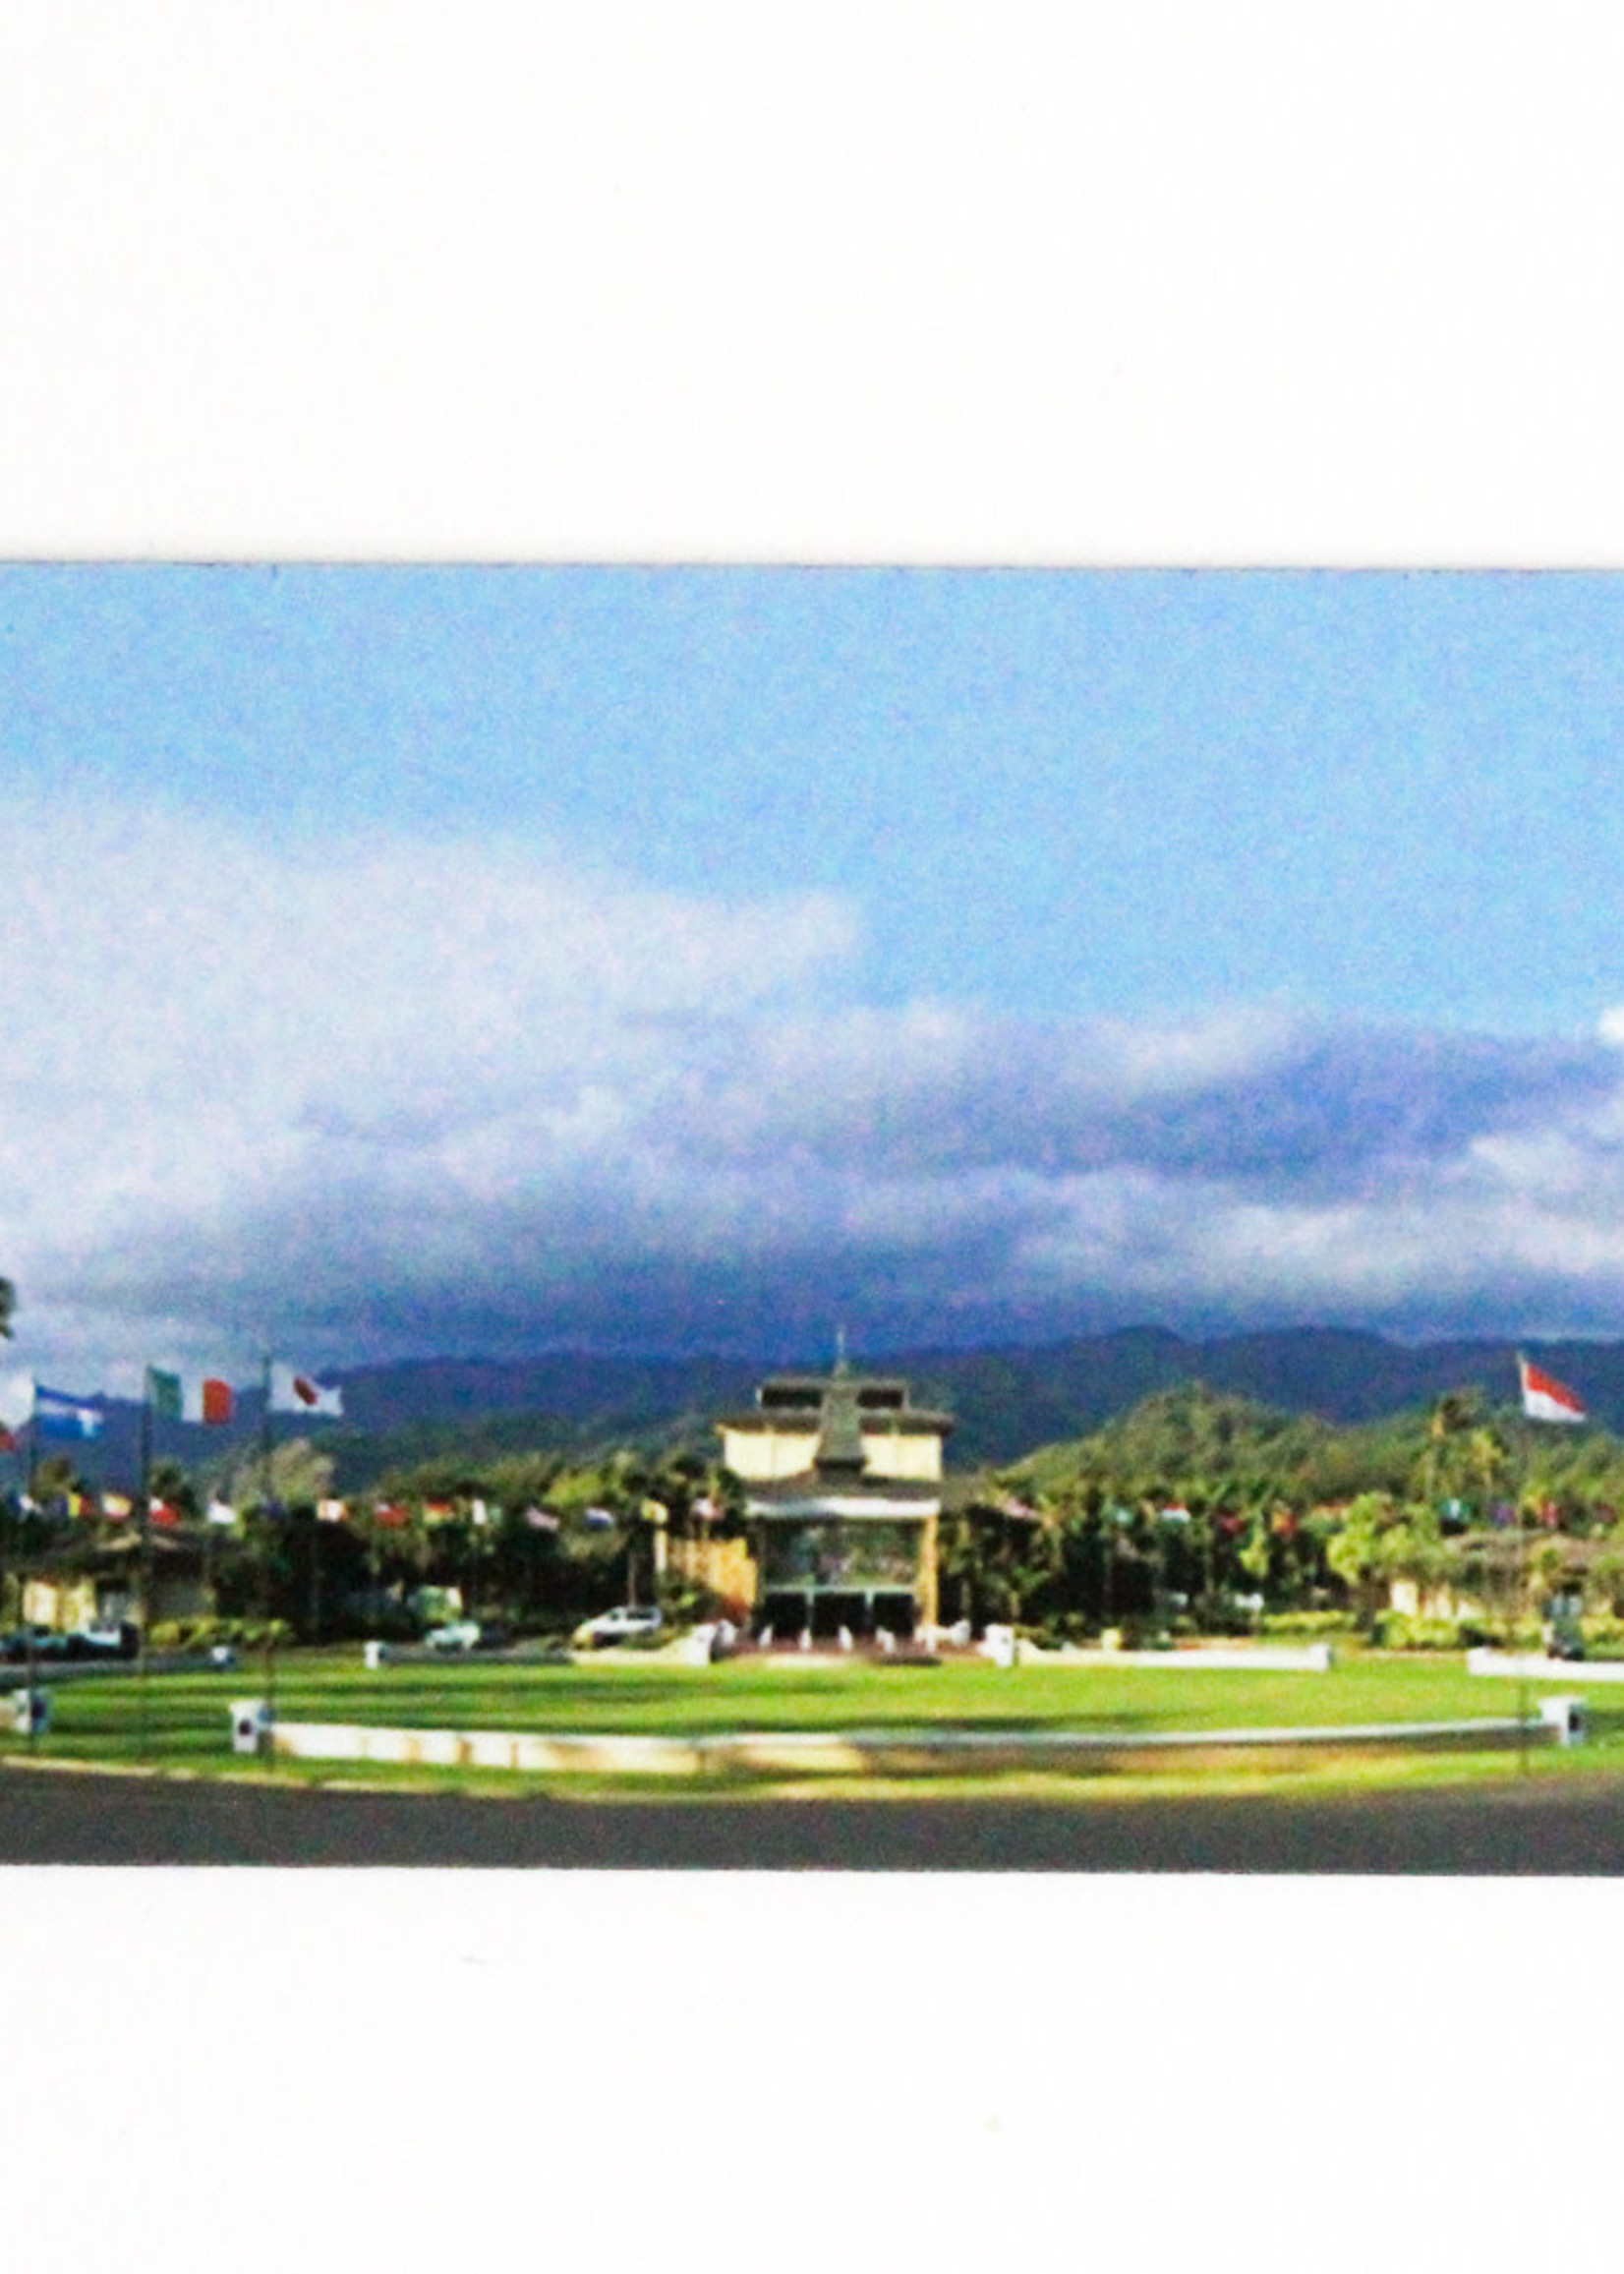 BYUH MAGNET (Campus image) 2X6